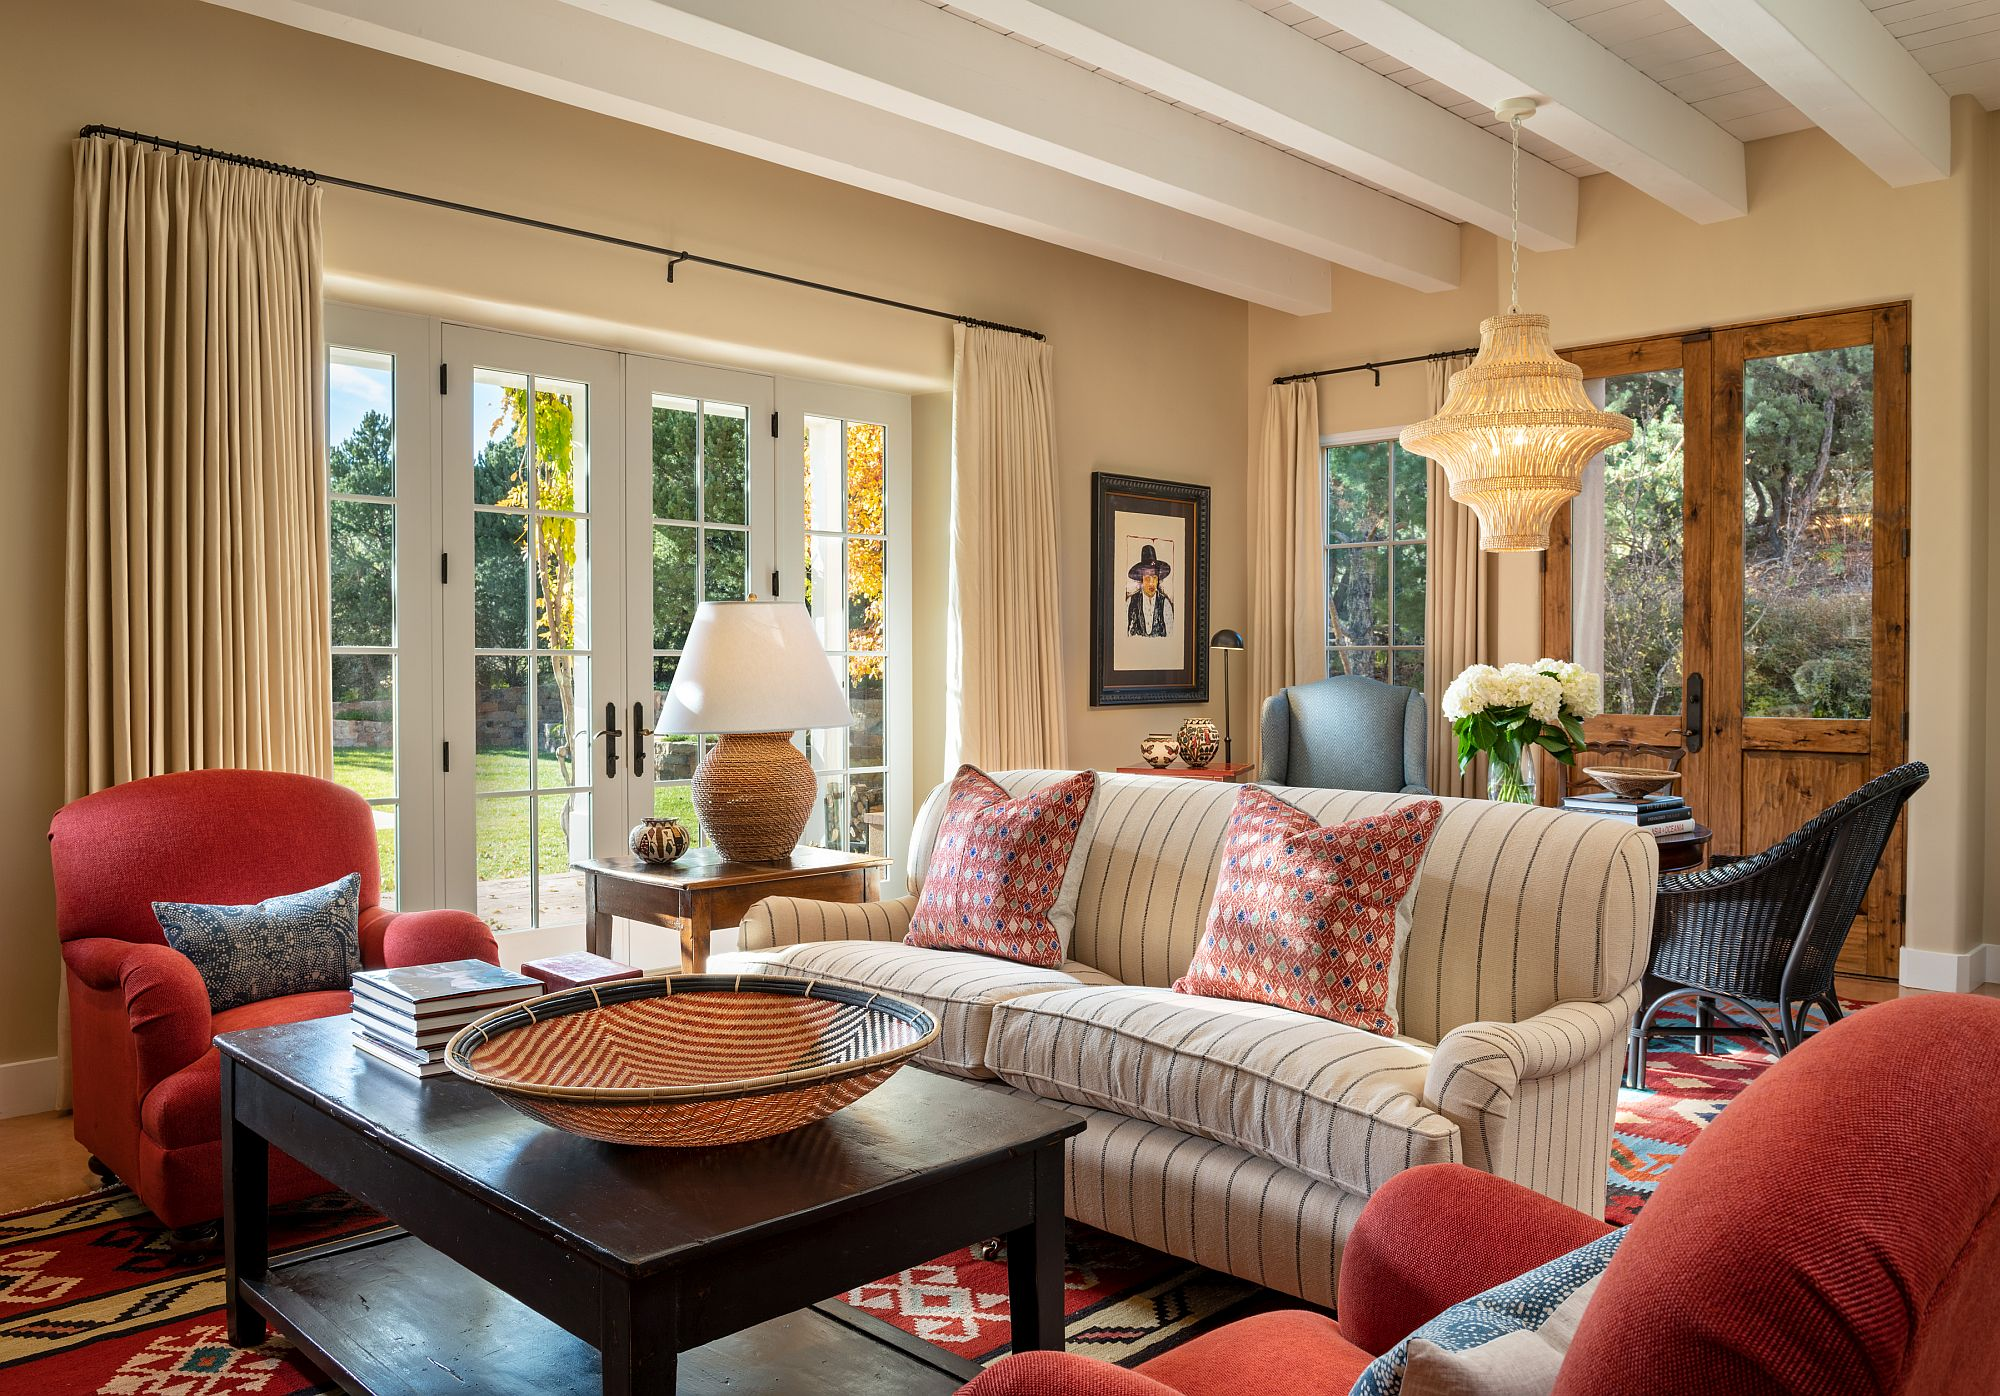 1565163363 586 spectacular and cozy living rooms with ceiling beams 25 trendy ideas inspirations - Spectacular and Cozy Living Rooms with Ceiling Beams: 25 Trendy Ideas, Inspirations